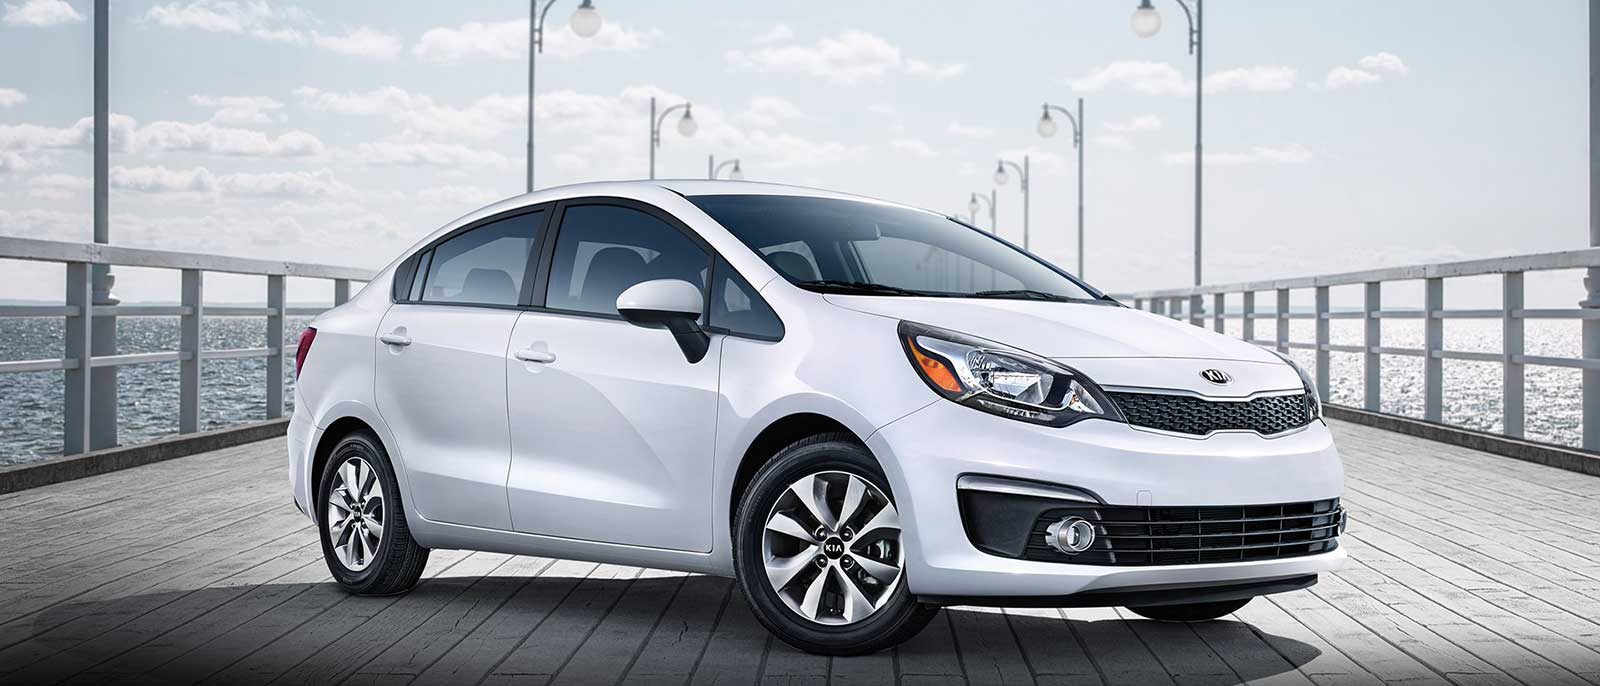 kia rio sedan 2017 auto cars. Black Bedroom Furniture Sets. Home Design Ideas